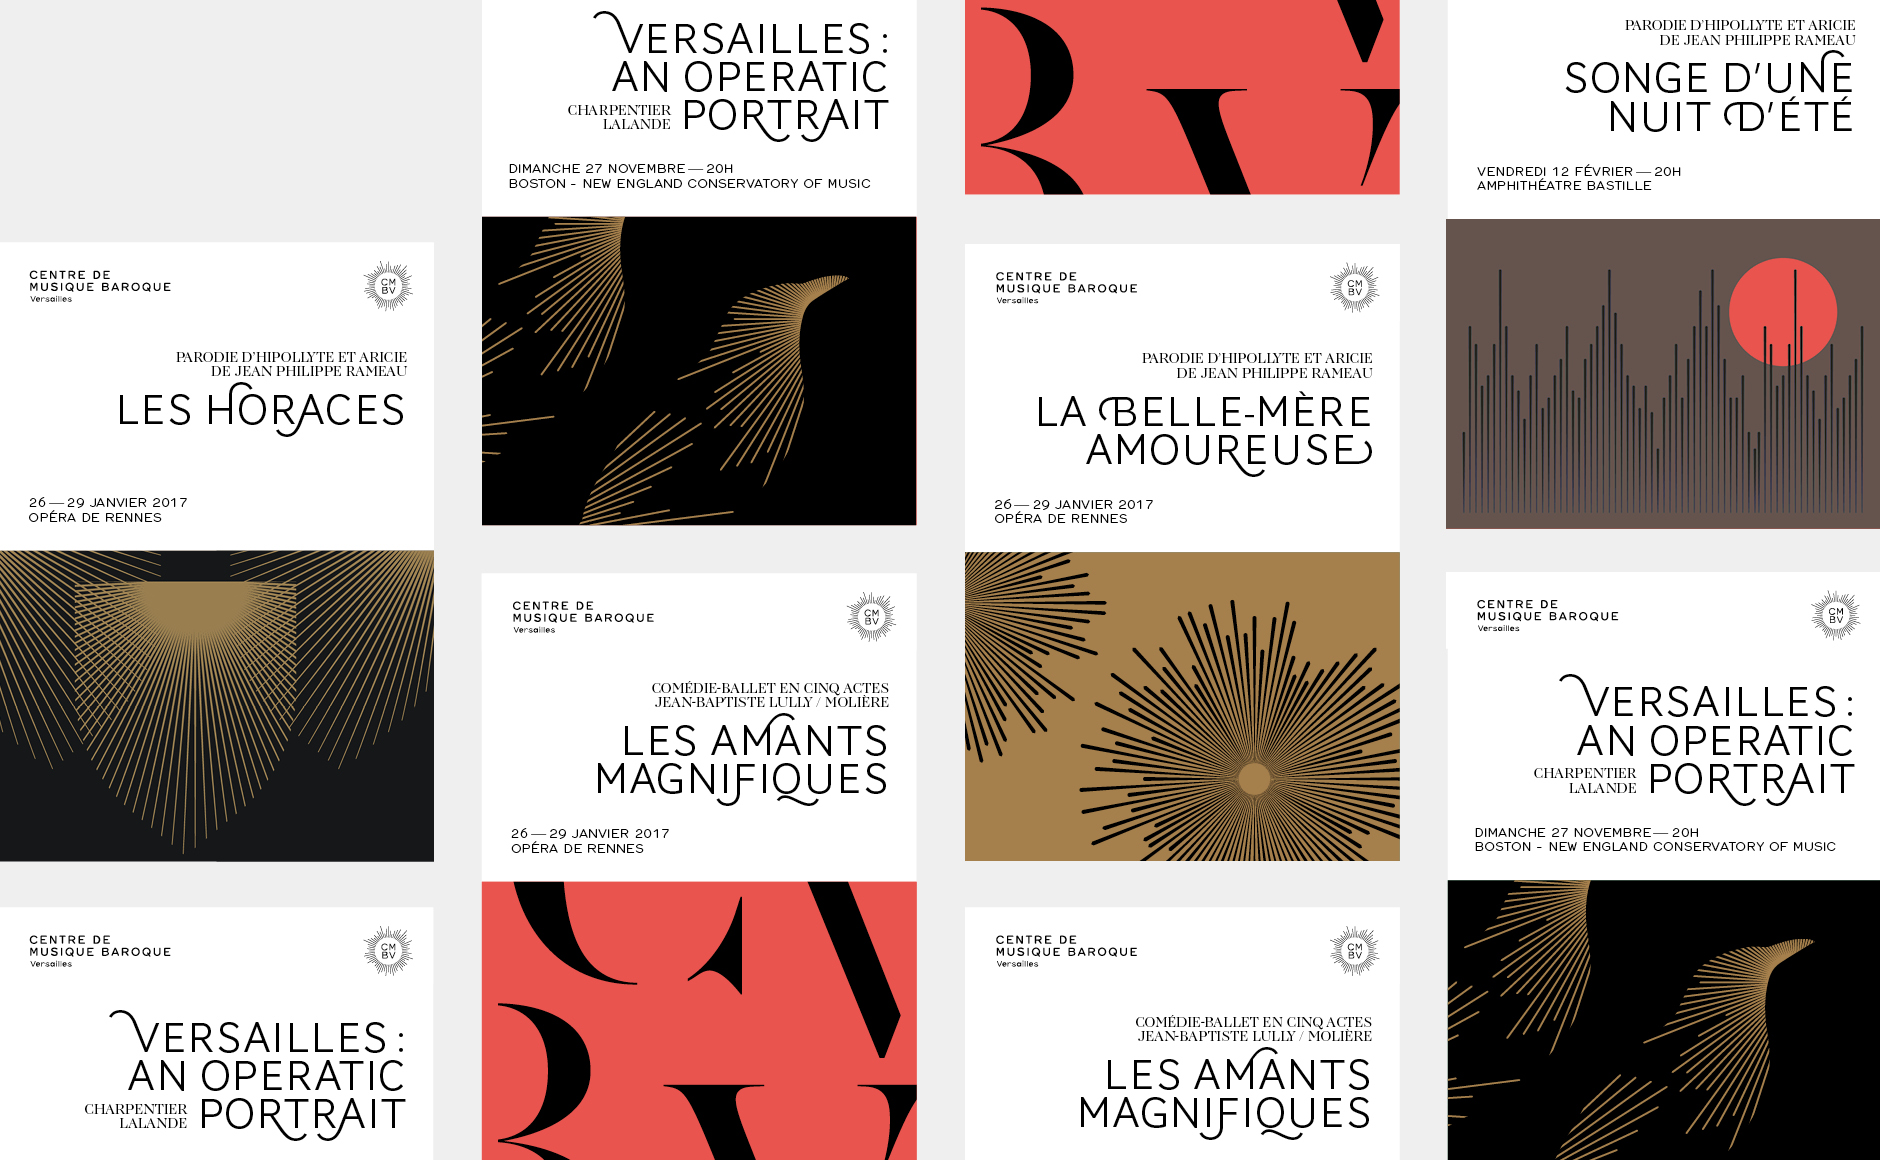 Affiches CMBV classical music poster